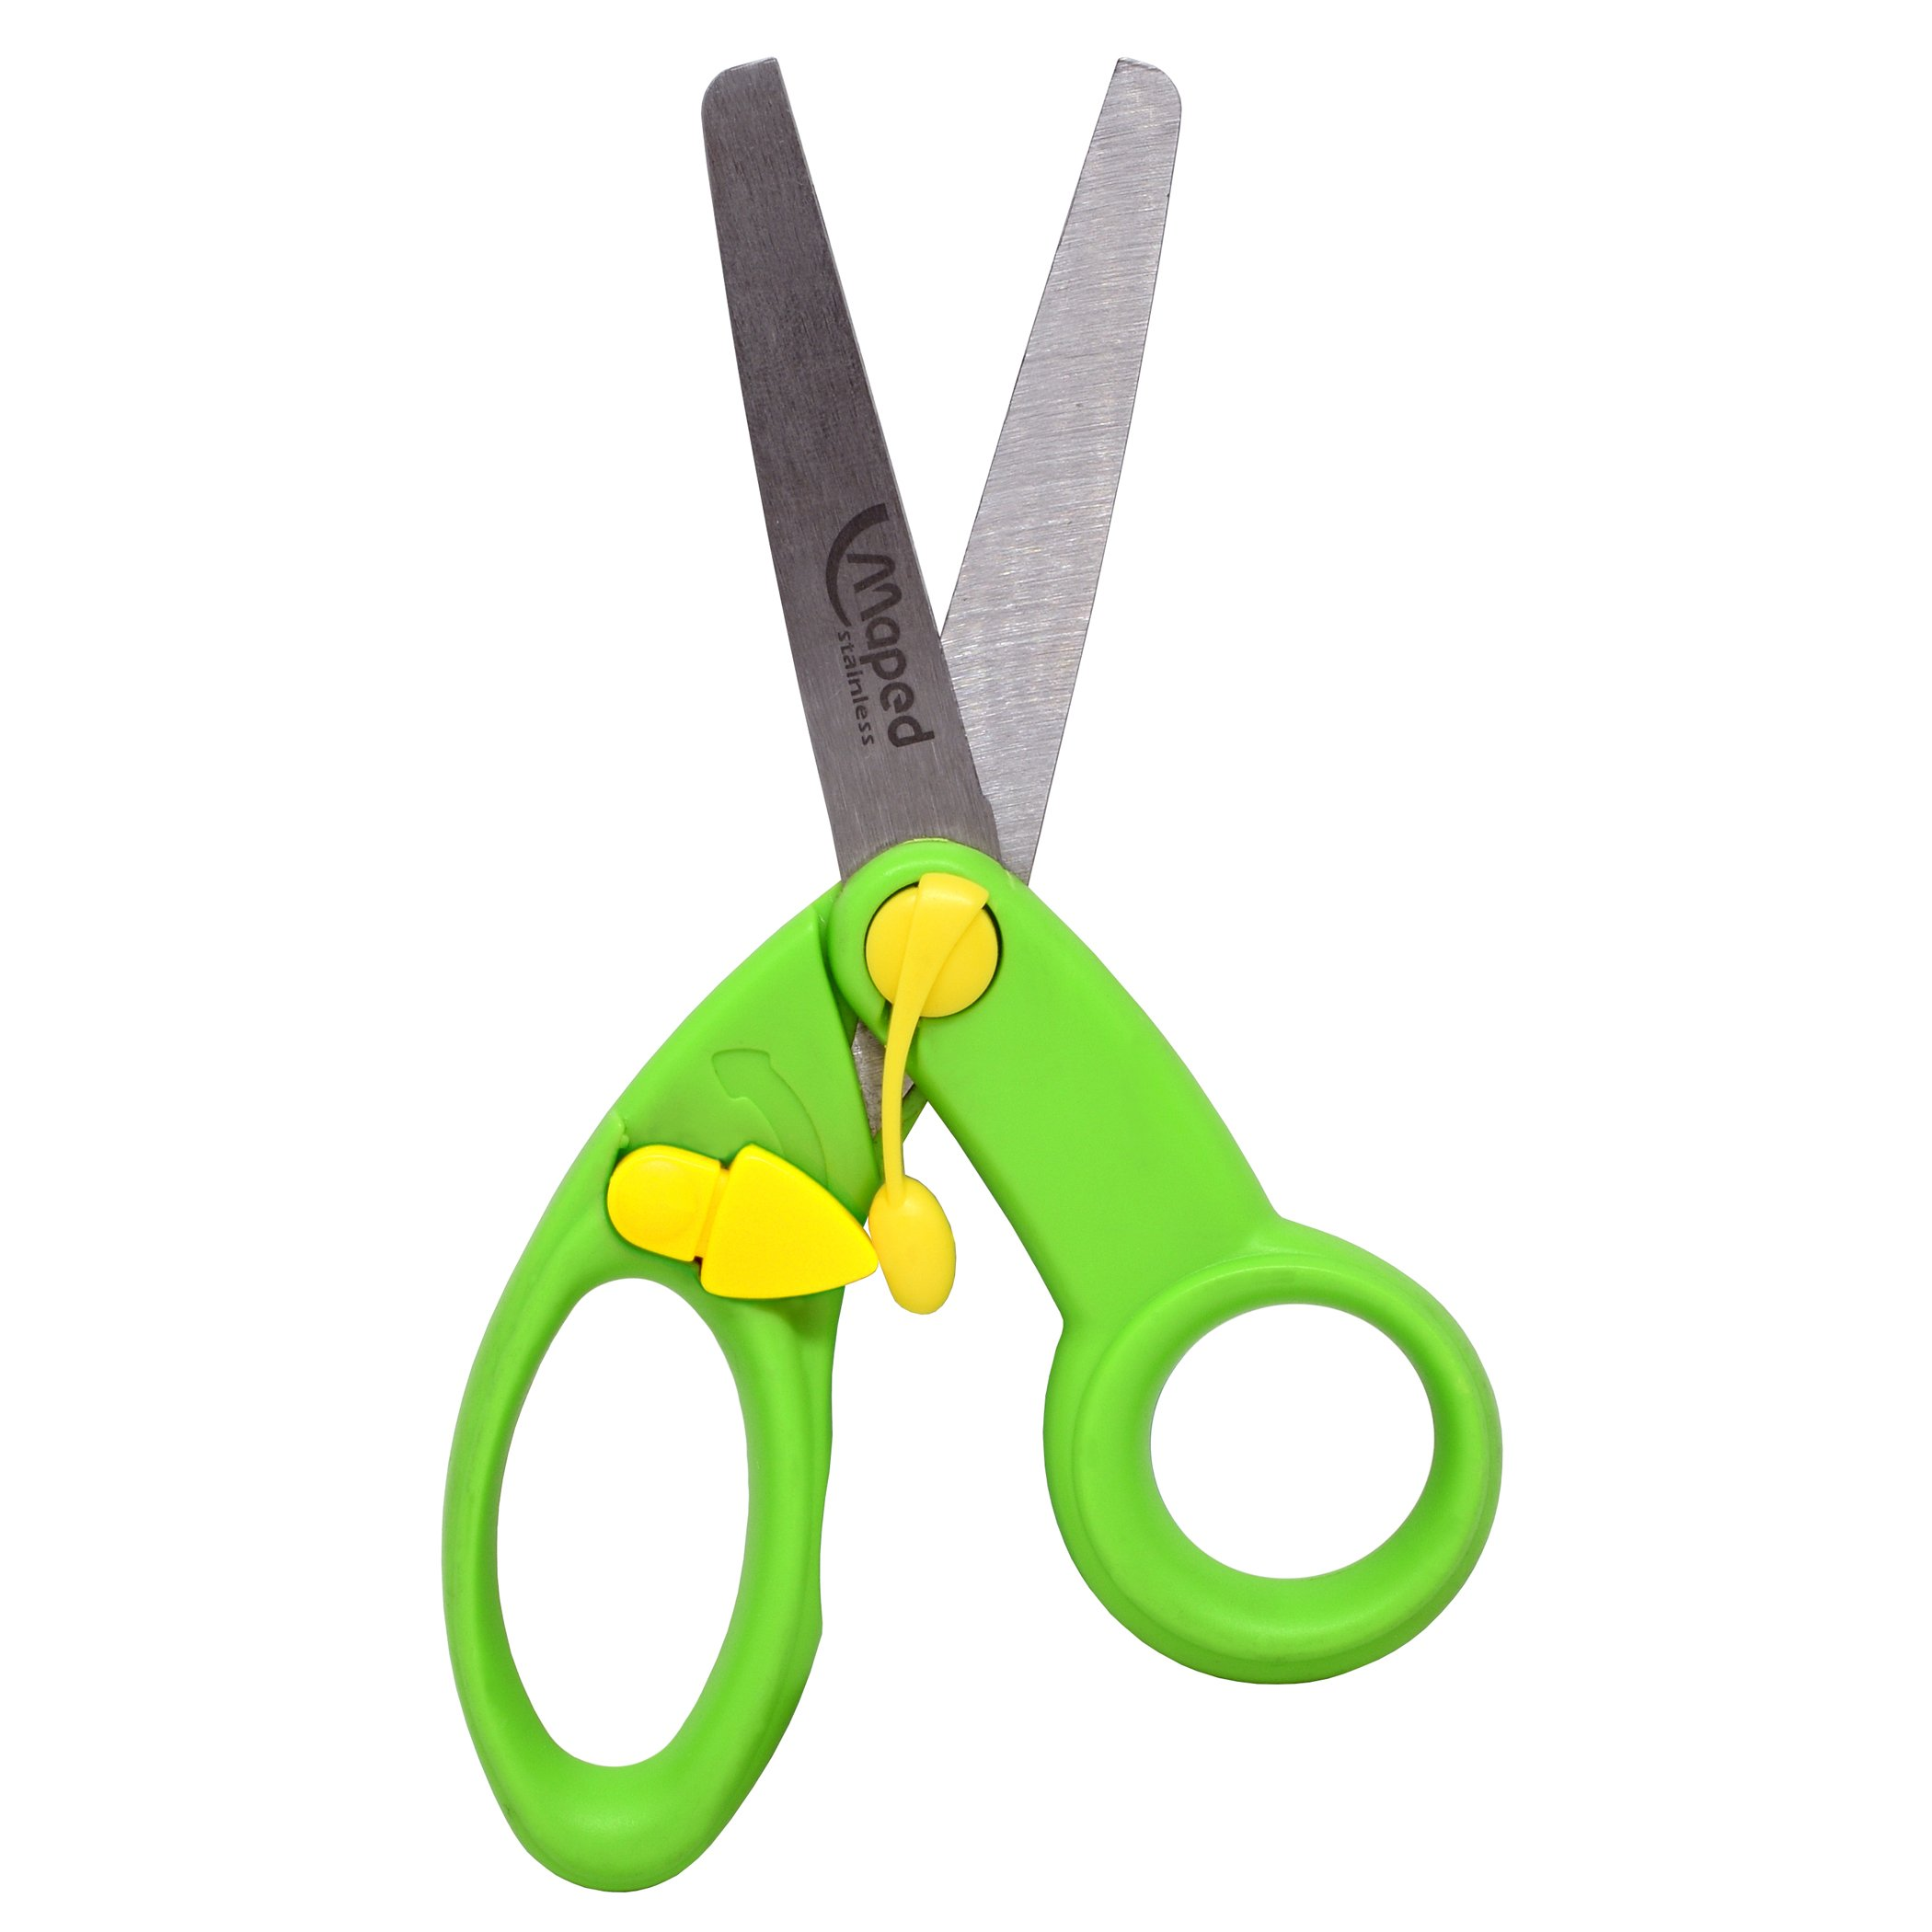 Maped MAP379249 Koopy Spring-Assisted Preschool Training Scissors, 5'' Length (Pack of 10)